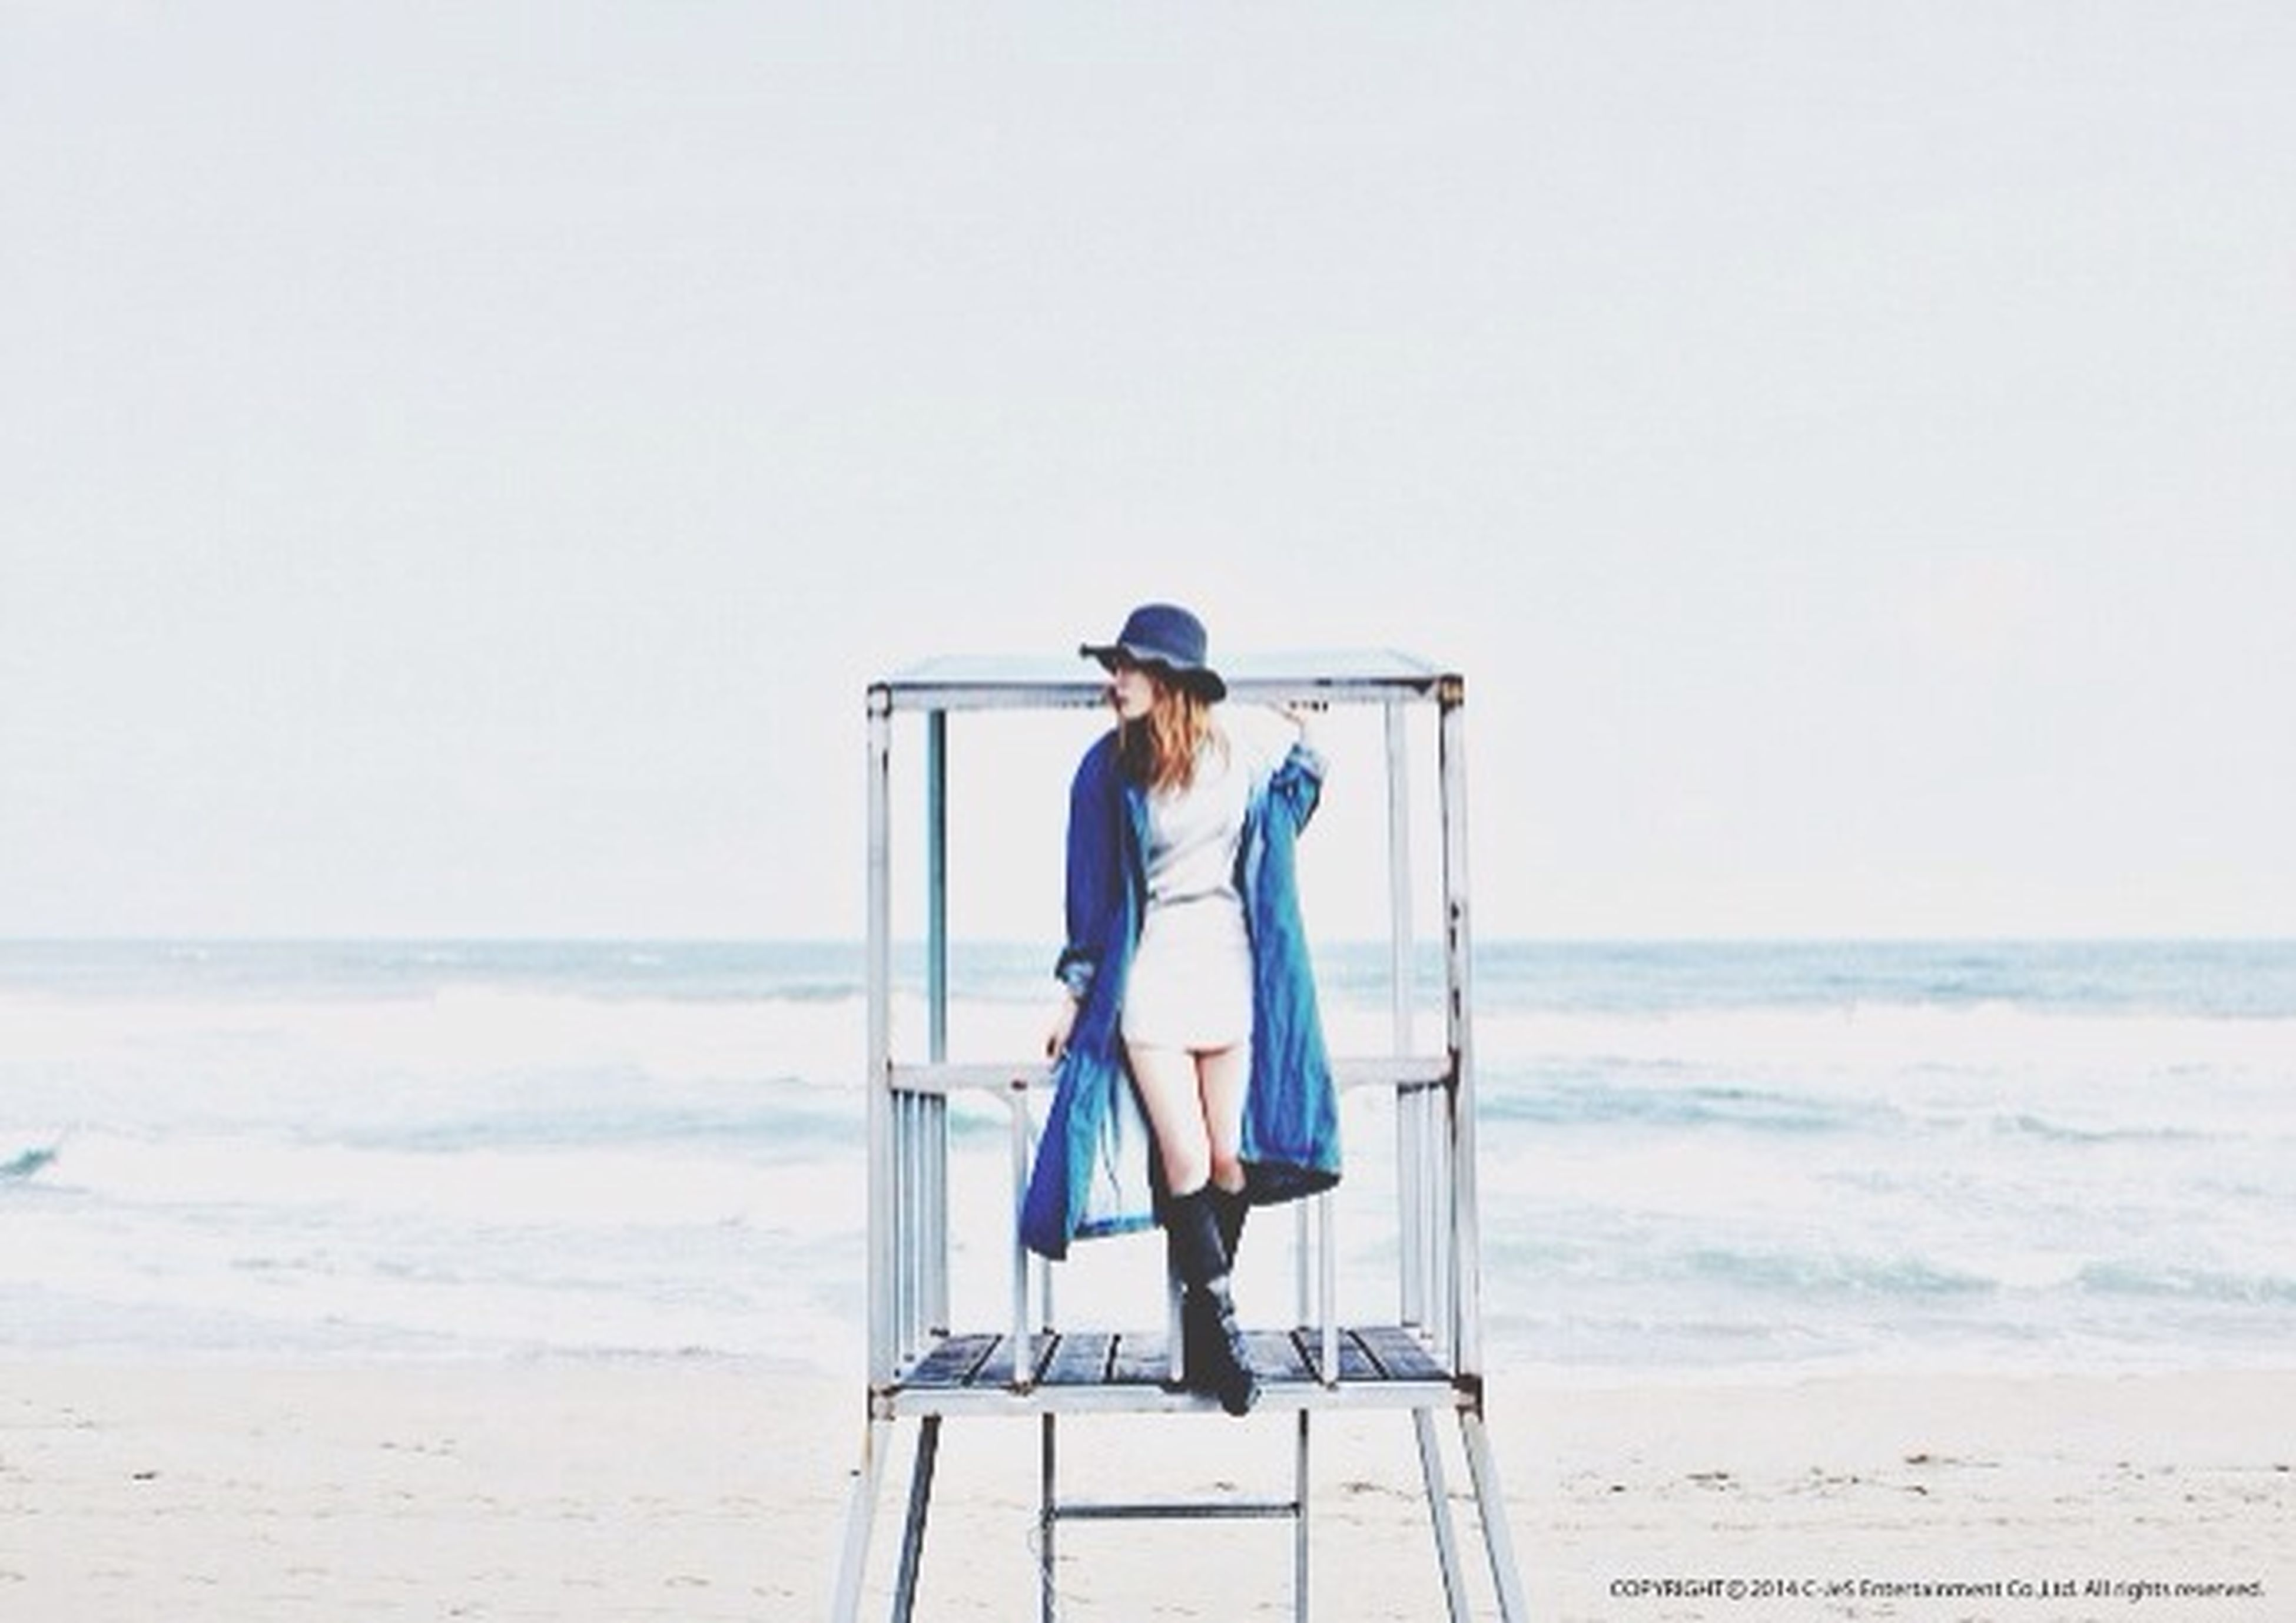 sea, horizon over water, water, beach, full length, rear view, lifestyles, clear sky, leisure activity, copy space, standing, shore, casual clothing, tranquility, vacations, tranquil scene, person, scenics